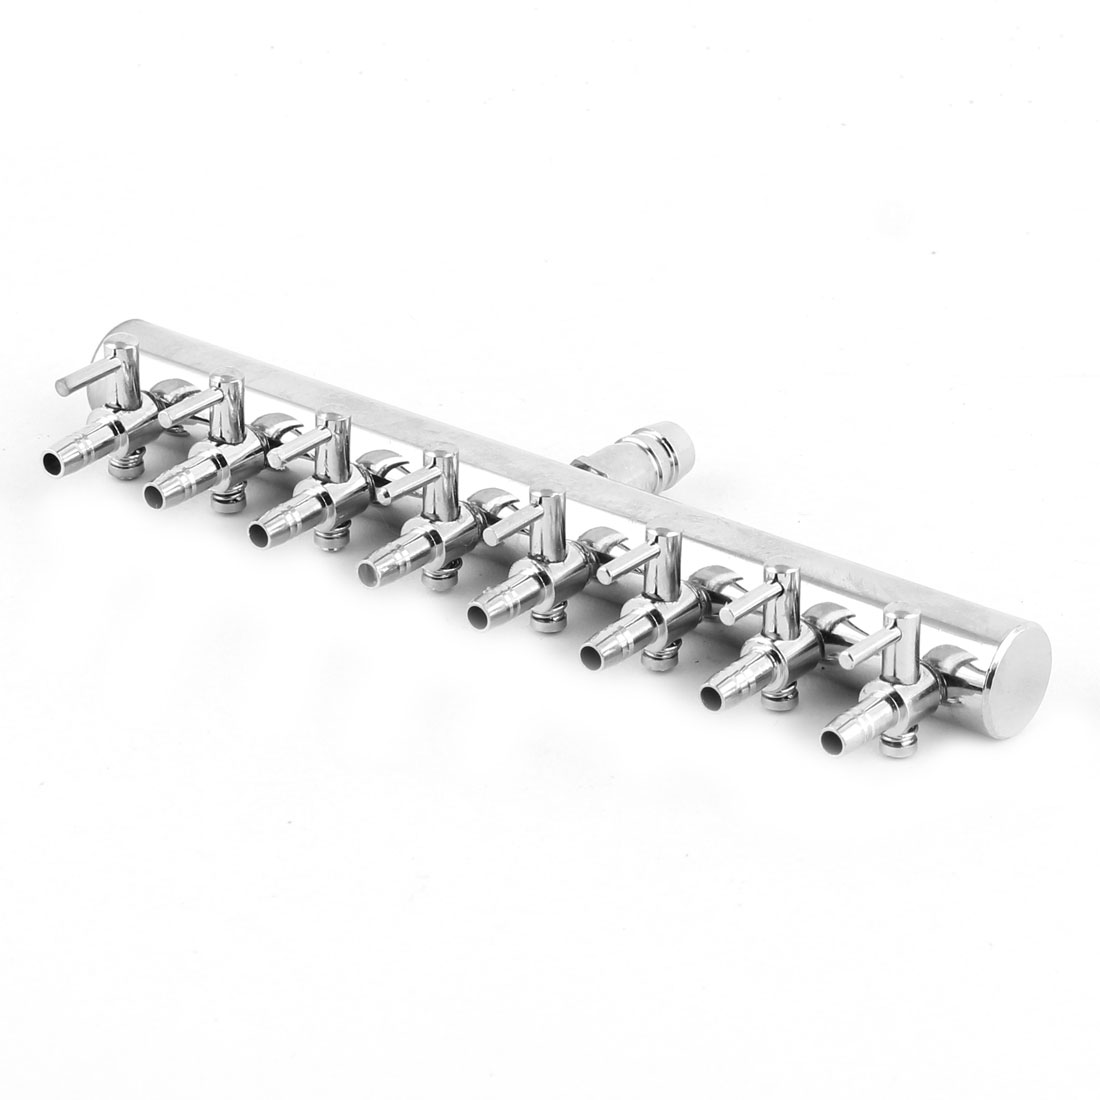 Stainless Steel 8 Way Outlet Water Air Flow Control Valve for Aquarium Fish Tank